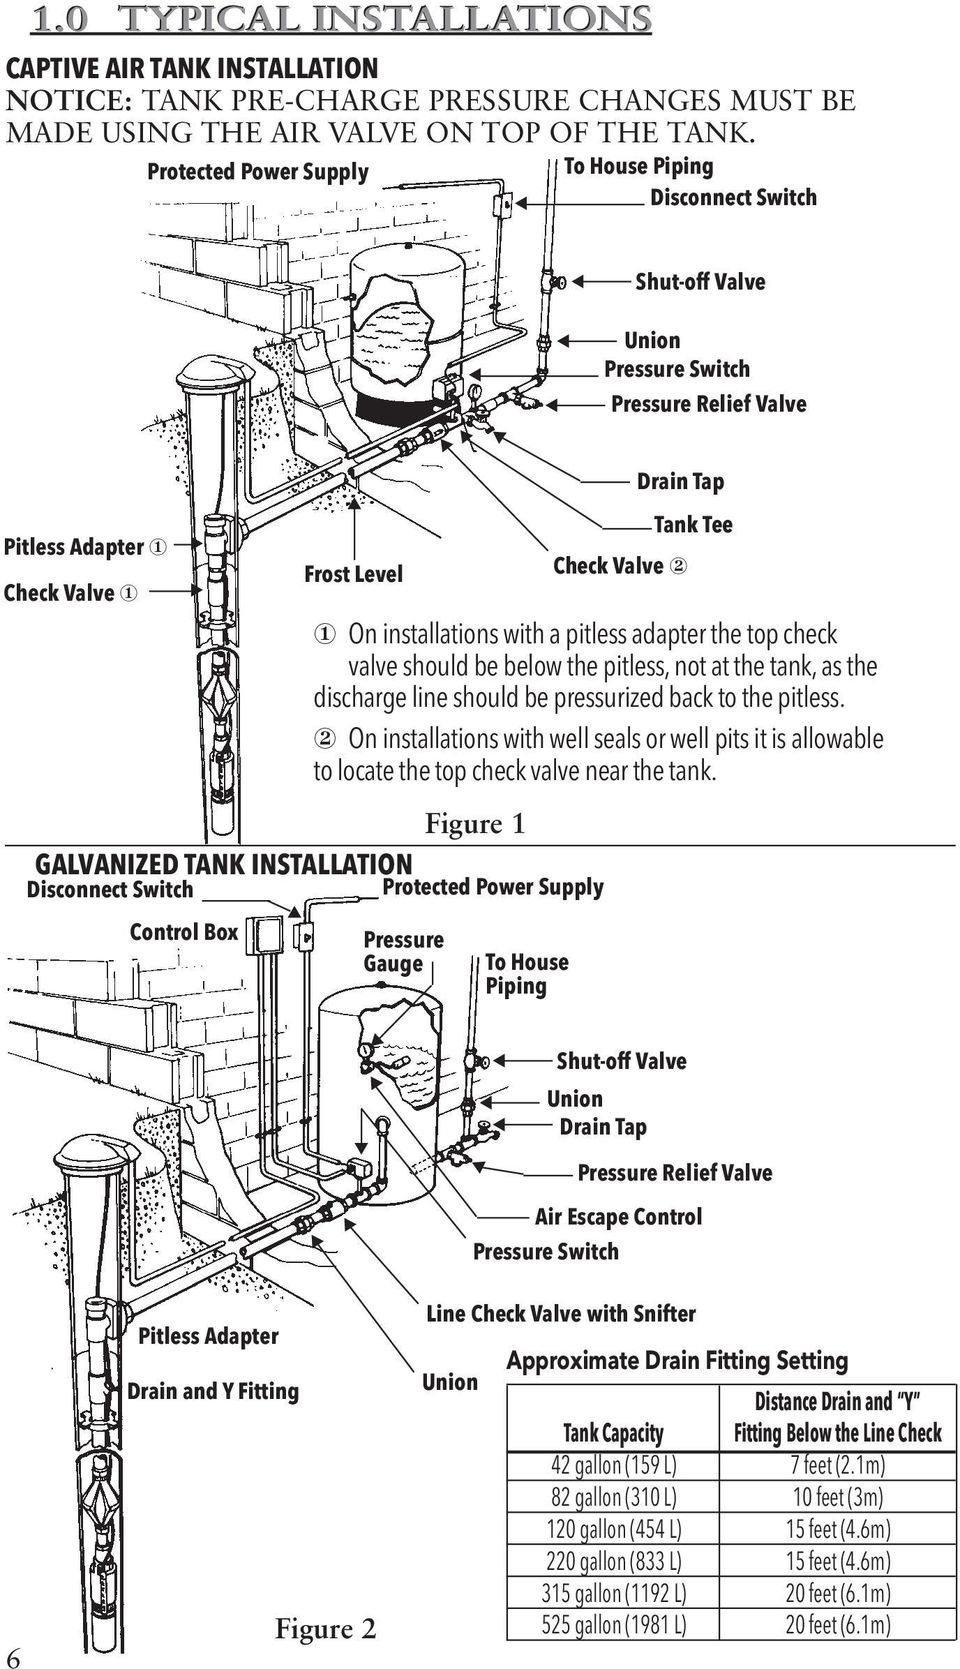 Wells steam table wiring diagram black decker wiring instruction manual im096 4 submersible pumps installation page 6 3268705 instruction manual im096 4 submersible pumps installation operation and greentooth Choice Image